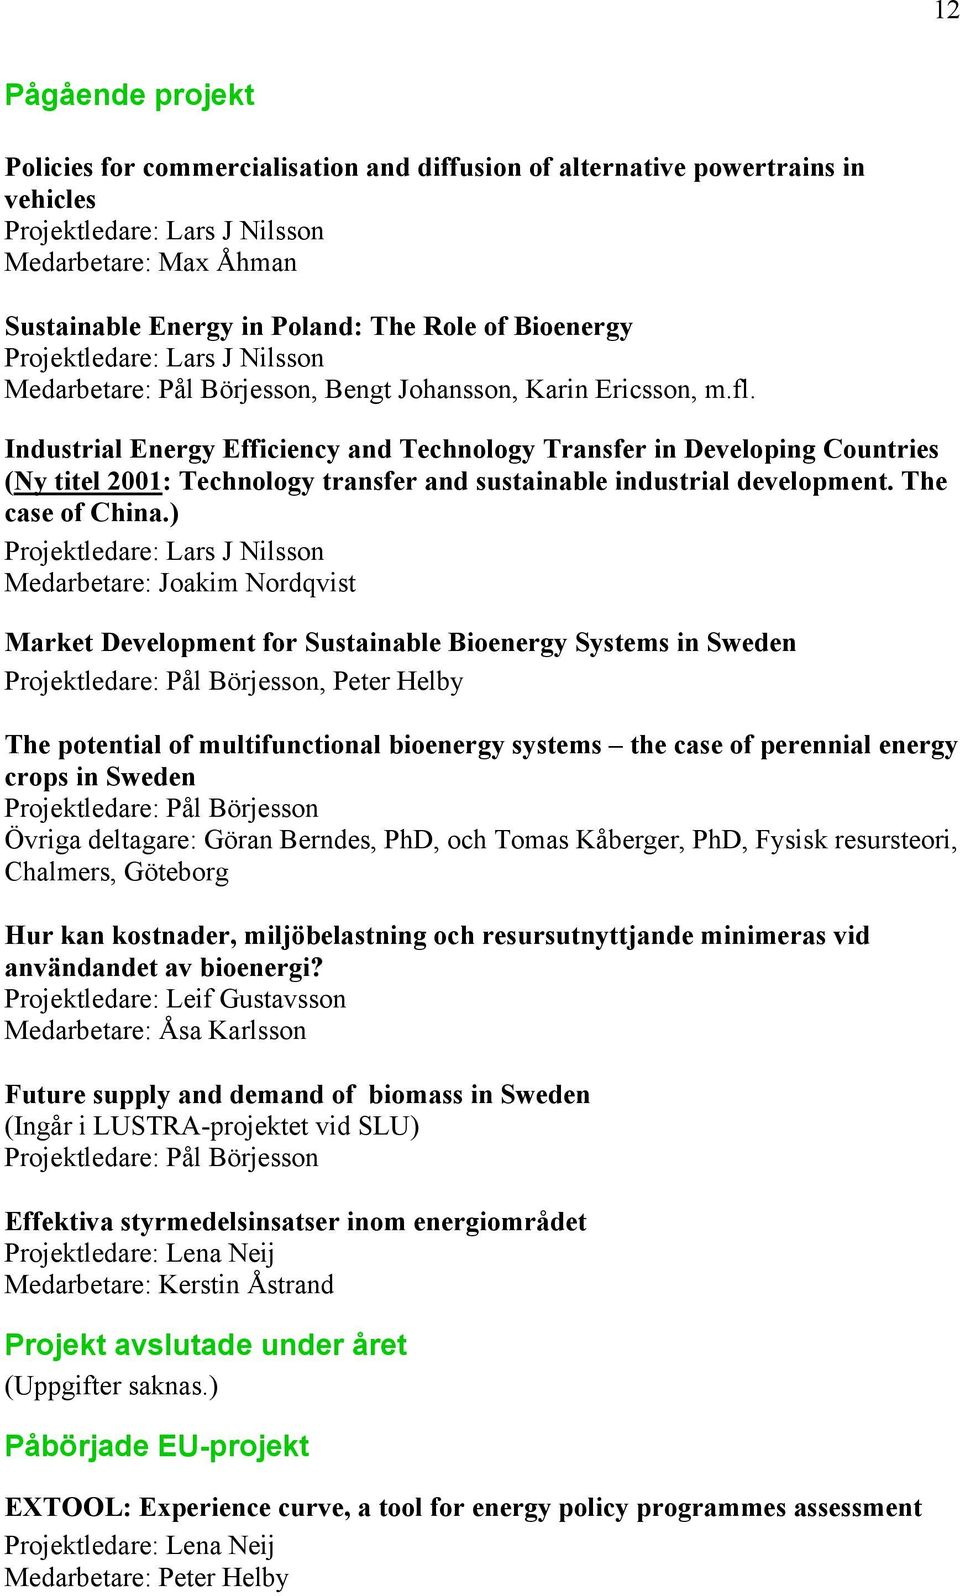 Industrial Energy Efficiency and Technology Transfer in Developing Countries (Ny titel 2001: Technology transfer and sustainable industrial development. The case of China.